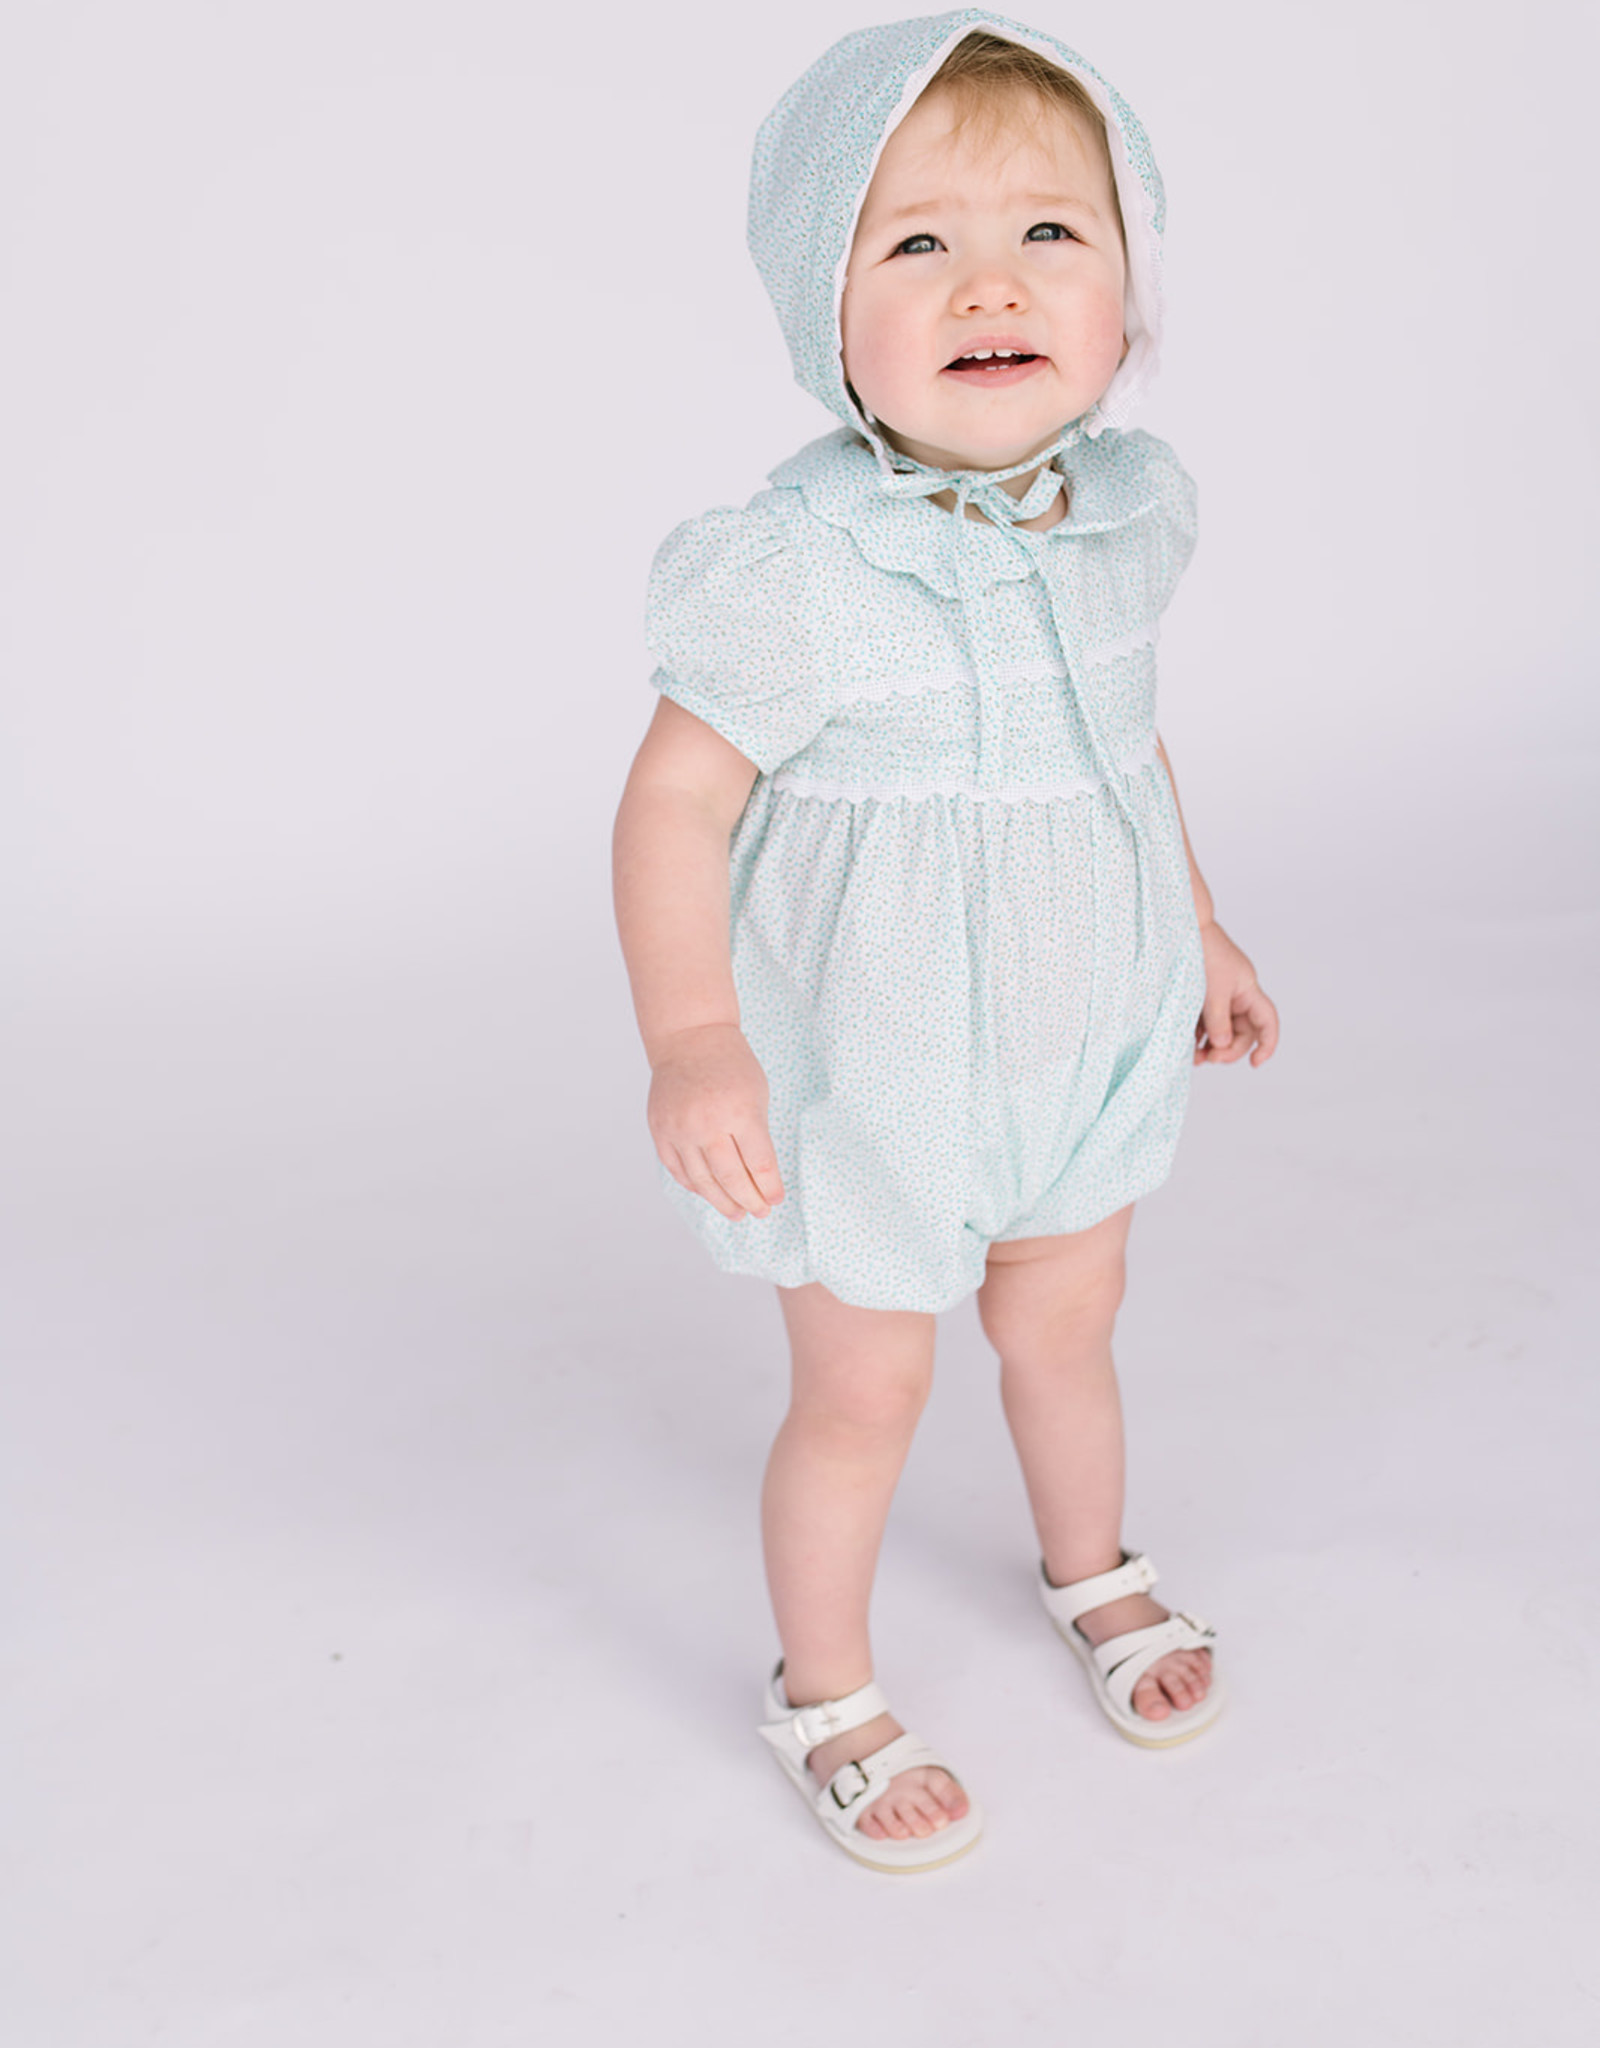 Luli Aqua Print Romper with Matching Bonnet